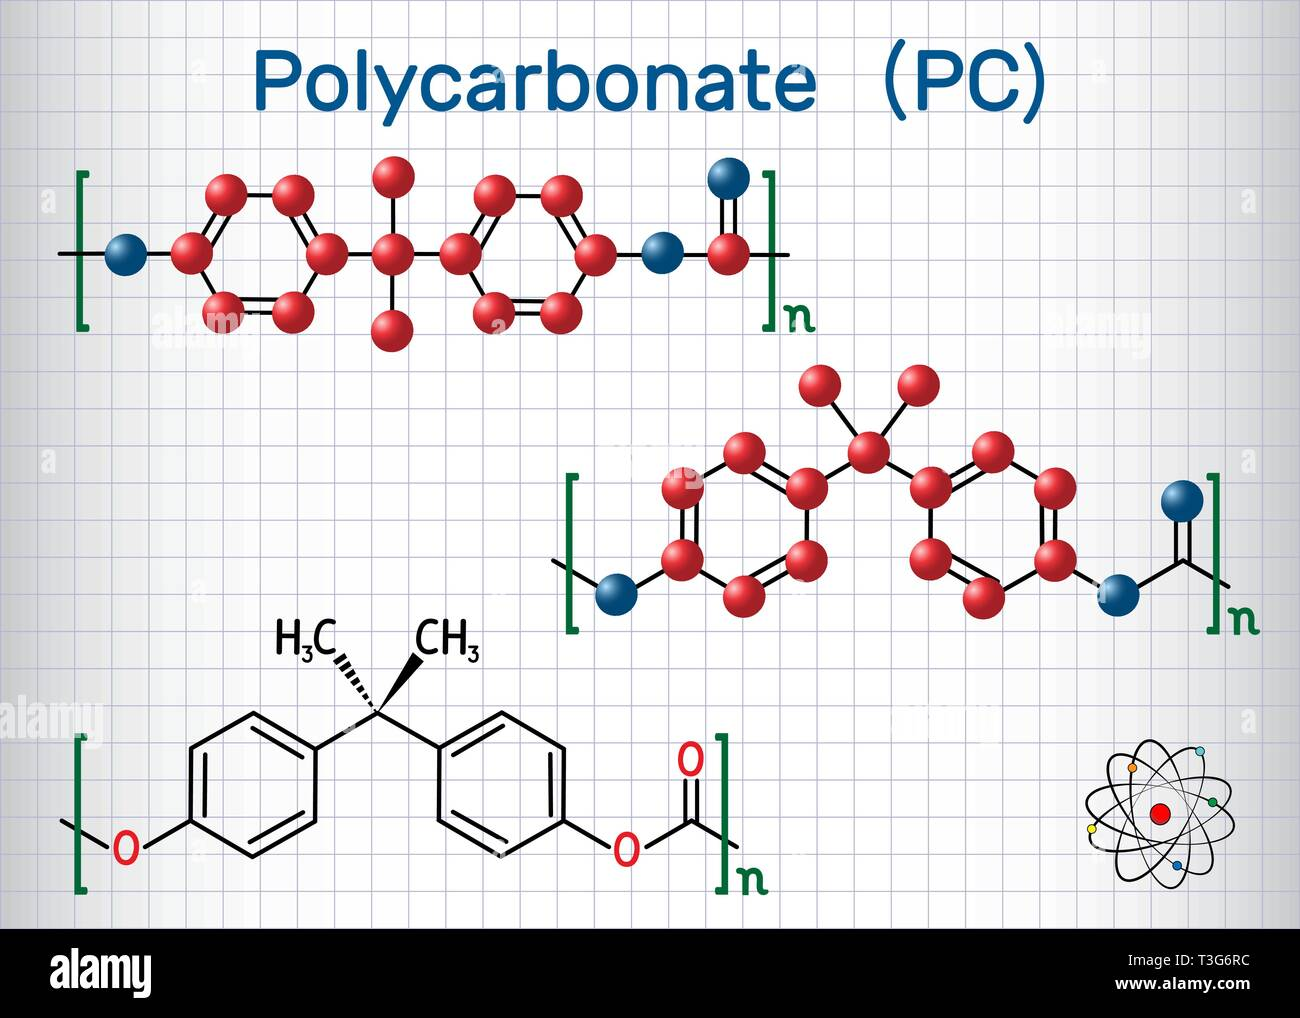 Polycarbonate (PC) thermoplastic polymer molecule. Sheet of paper in a cage. Structural chemical formula and molecule model. Vector illustration - Stock Vector